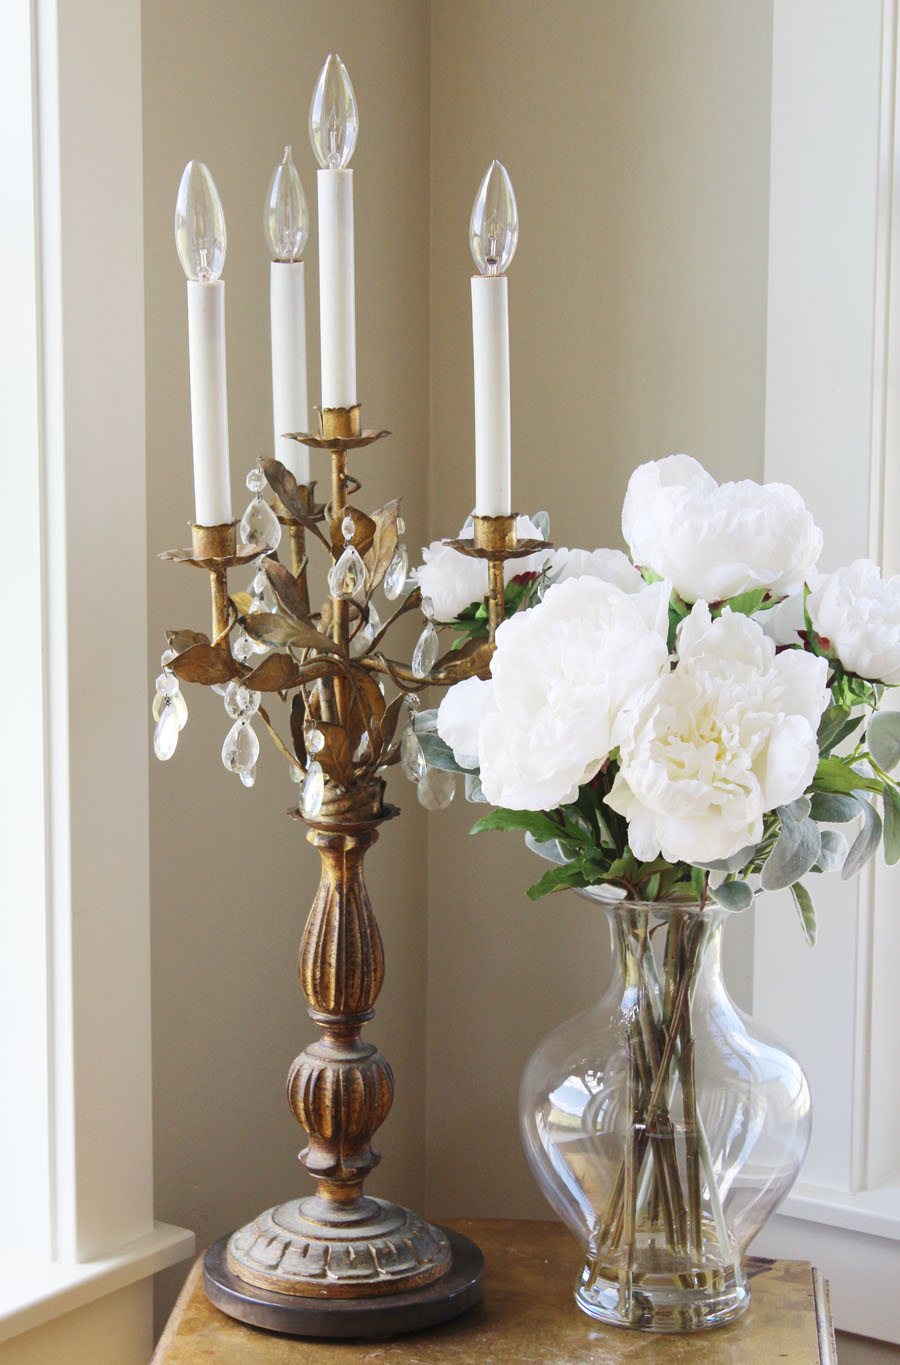 French Tole Antique Girandole Table Chandelier Candelabra